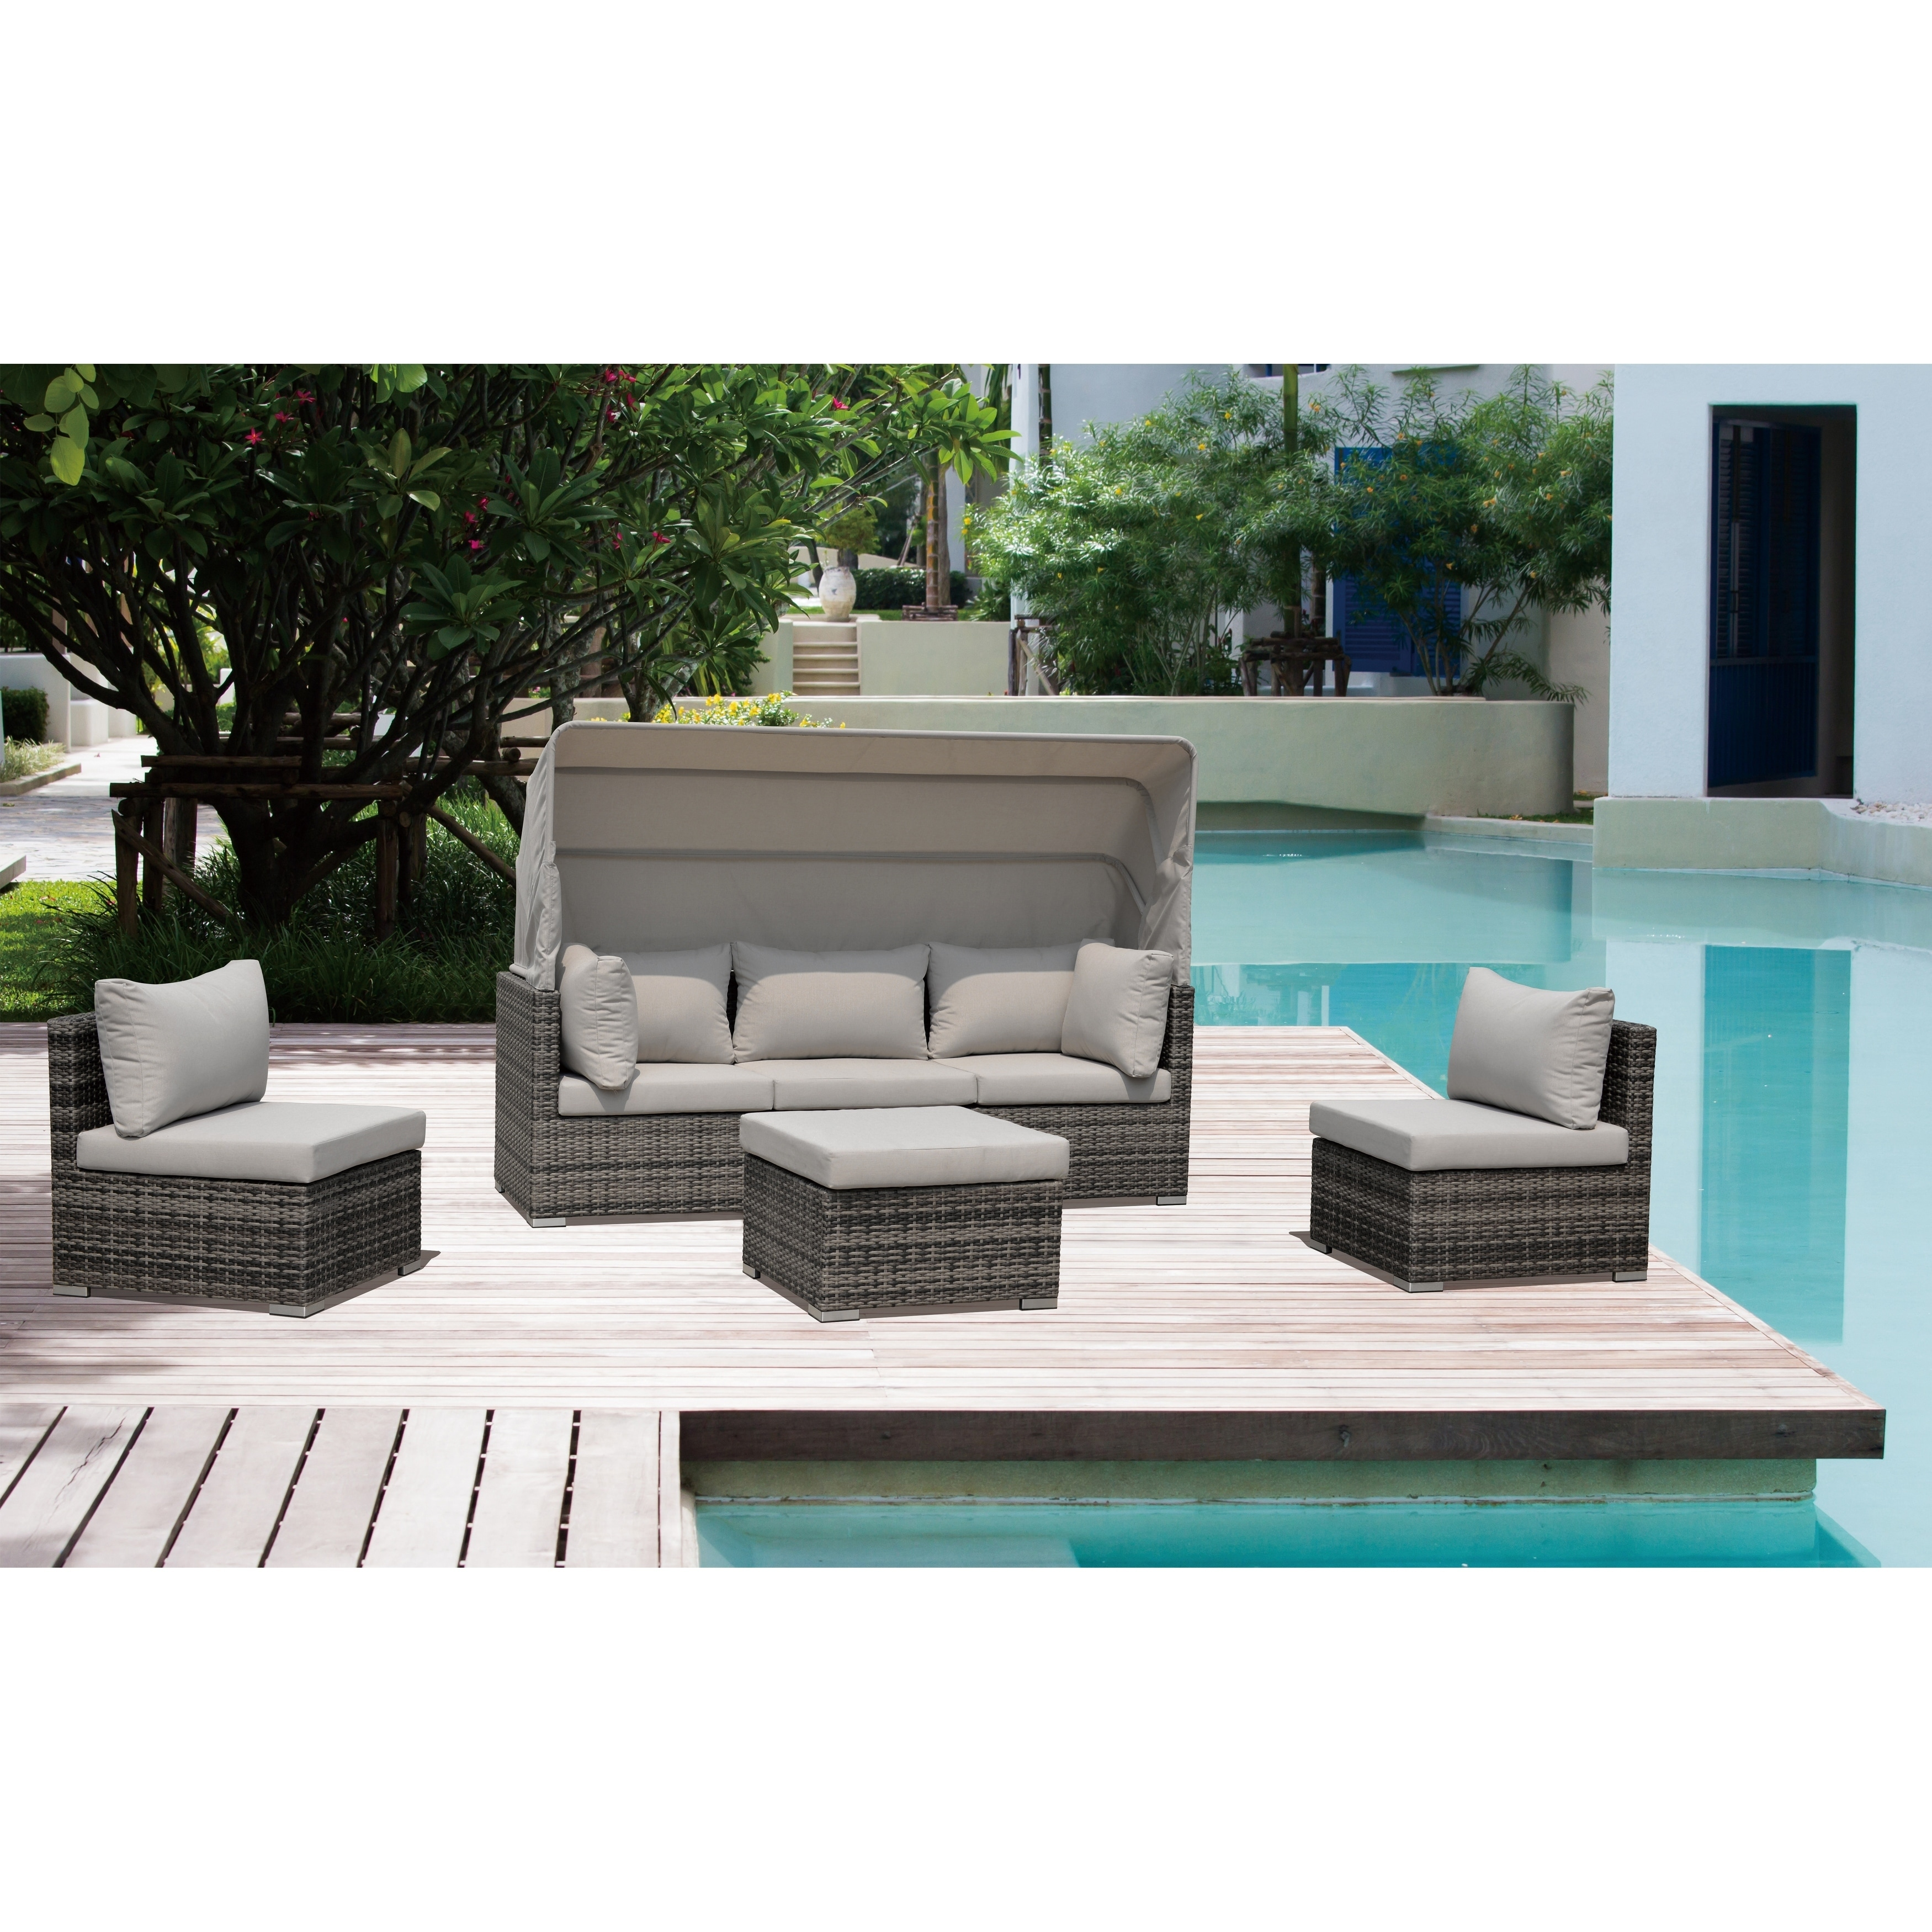 washable weave exquisitely curves hand rattan canopy comfortable attractive in woven removable seating round slopping waterproof beautiful daybed materials cushions circular uv and outdoor cushion aluminum using made resistant with lovable blue soft patio covers wicker quality gently rust half frame